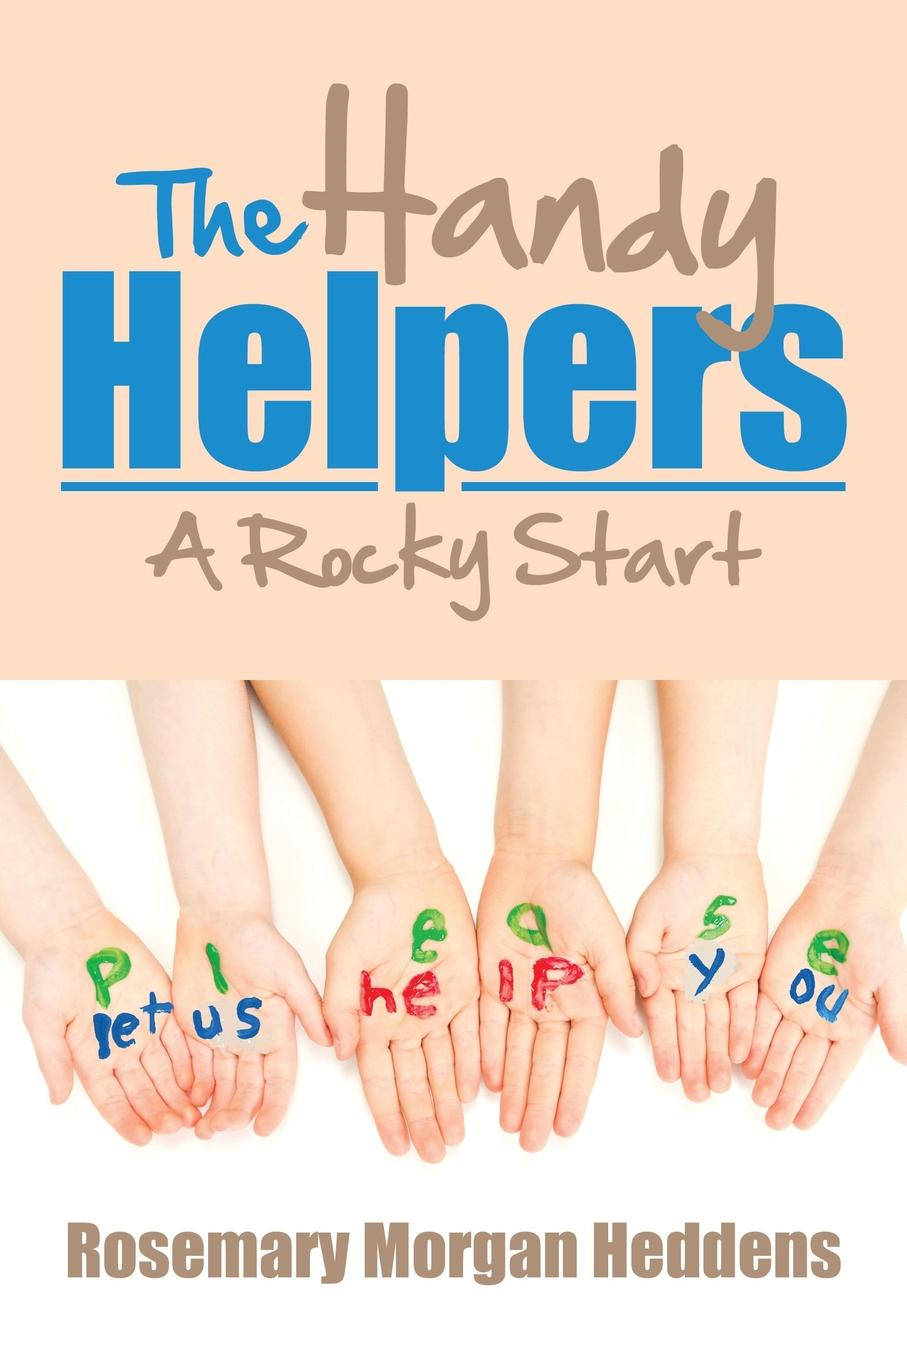 Rosemary Morgan Heddens The Handy Helpers. A Rocky Start